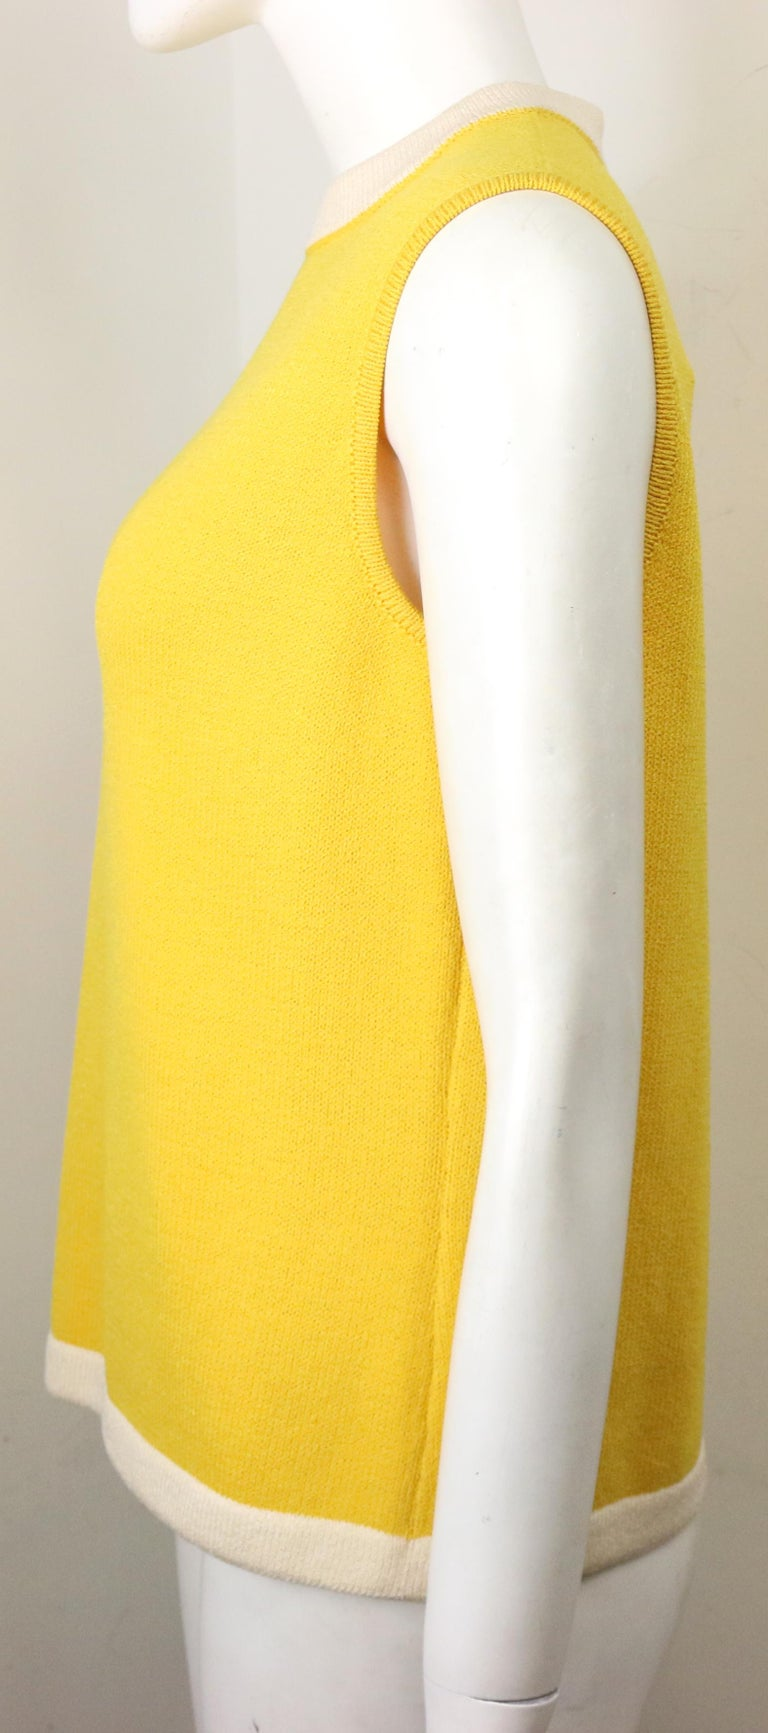 St John Yellow Cotton Sleeveless Top In Excellent Condition For Sale In Sheung Wan, HK